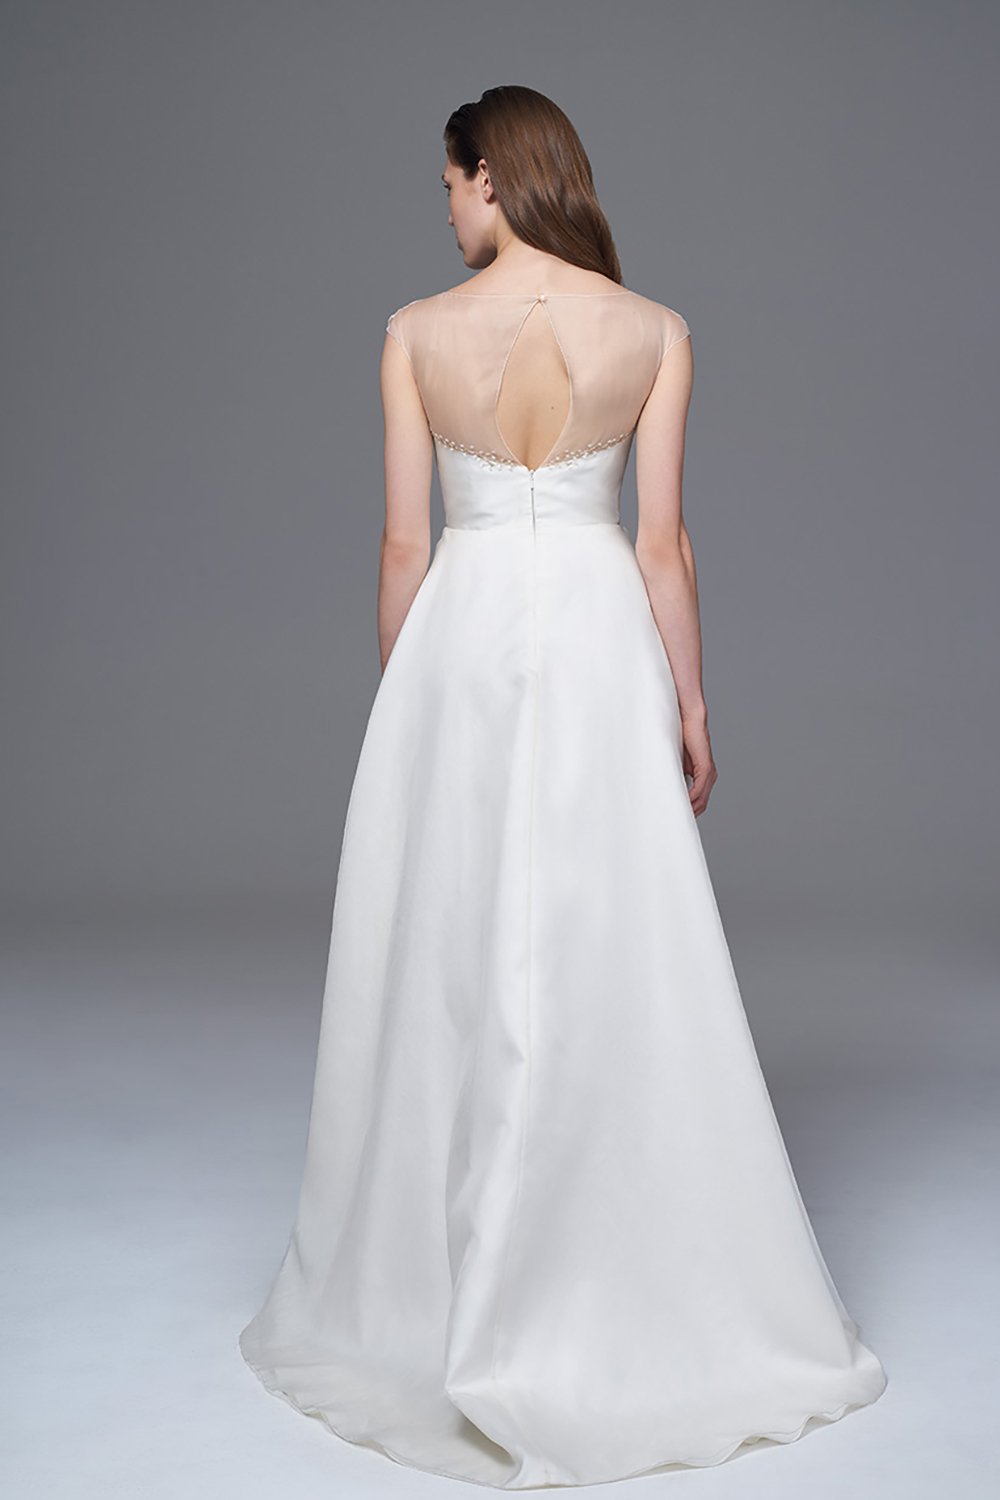 THE GRACE DRESS WITH AN ILLUSION AND HAND BEADED NECKLINE WITH A MIKARDO STRUCTURED SKIRT. BRIDAL WEDDING DRESS BY HALFPENNY LONDON